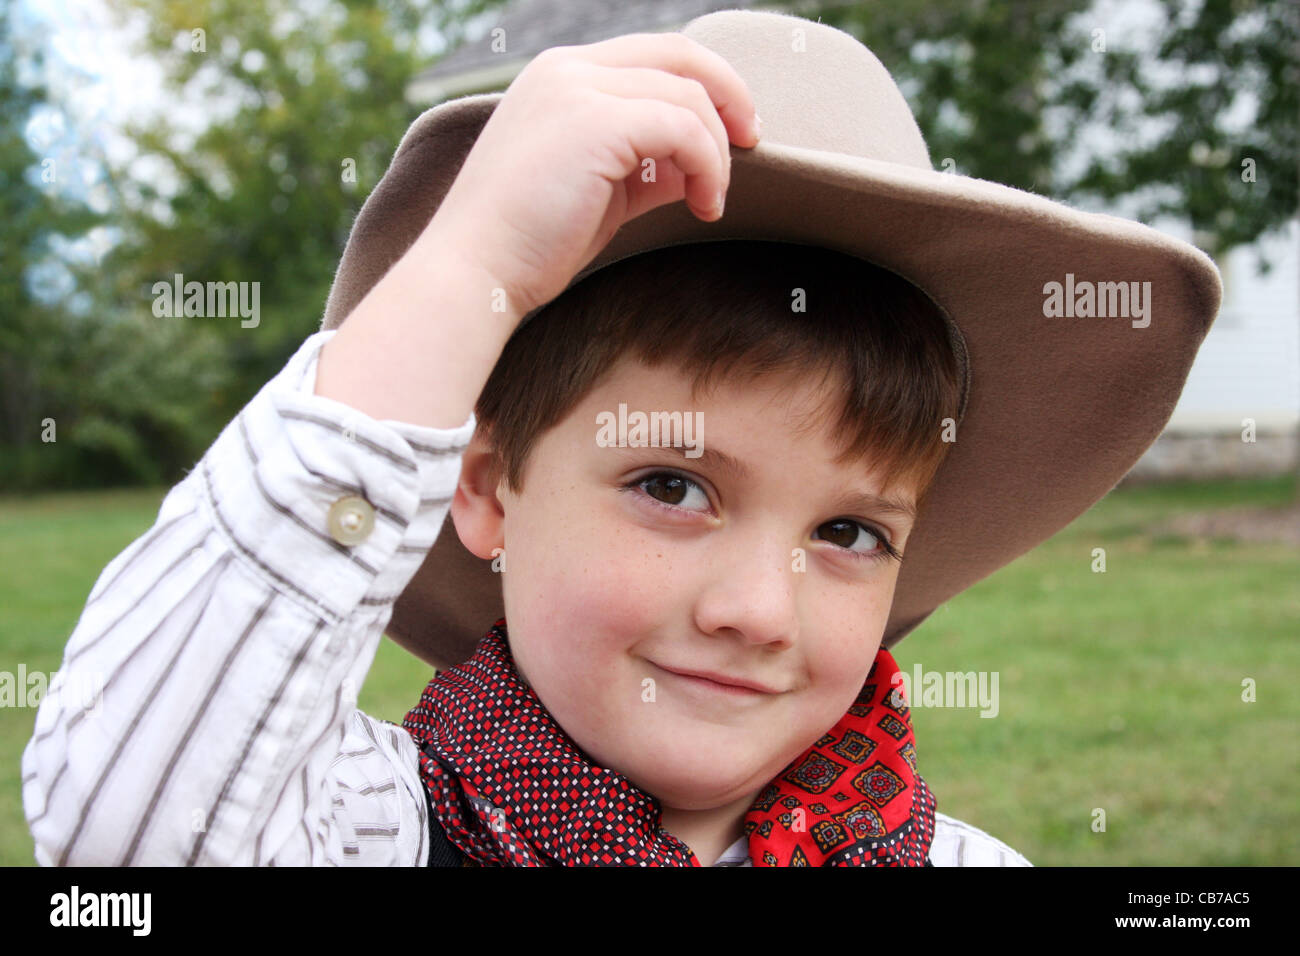 A cowboy tipping his hat howdy Stock Photo  41343797 - Alamy 13a7810df0e8